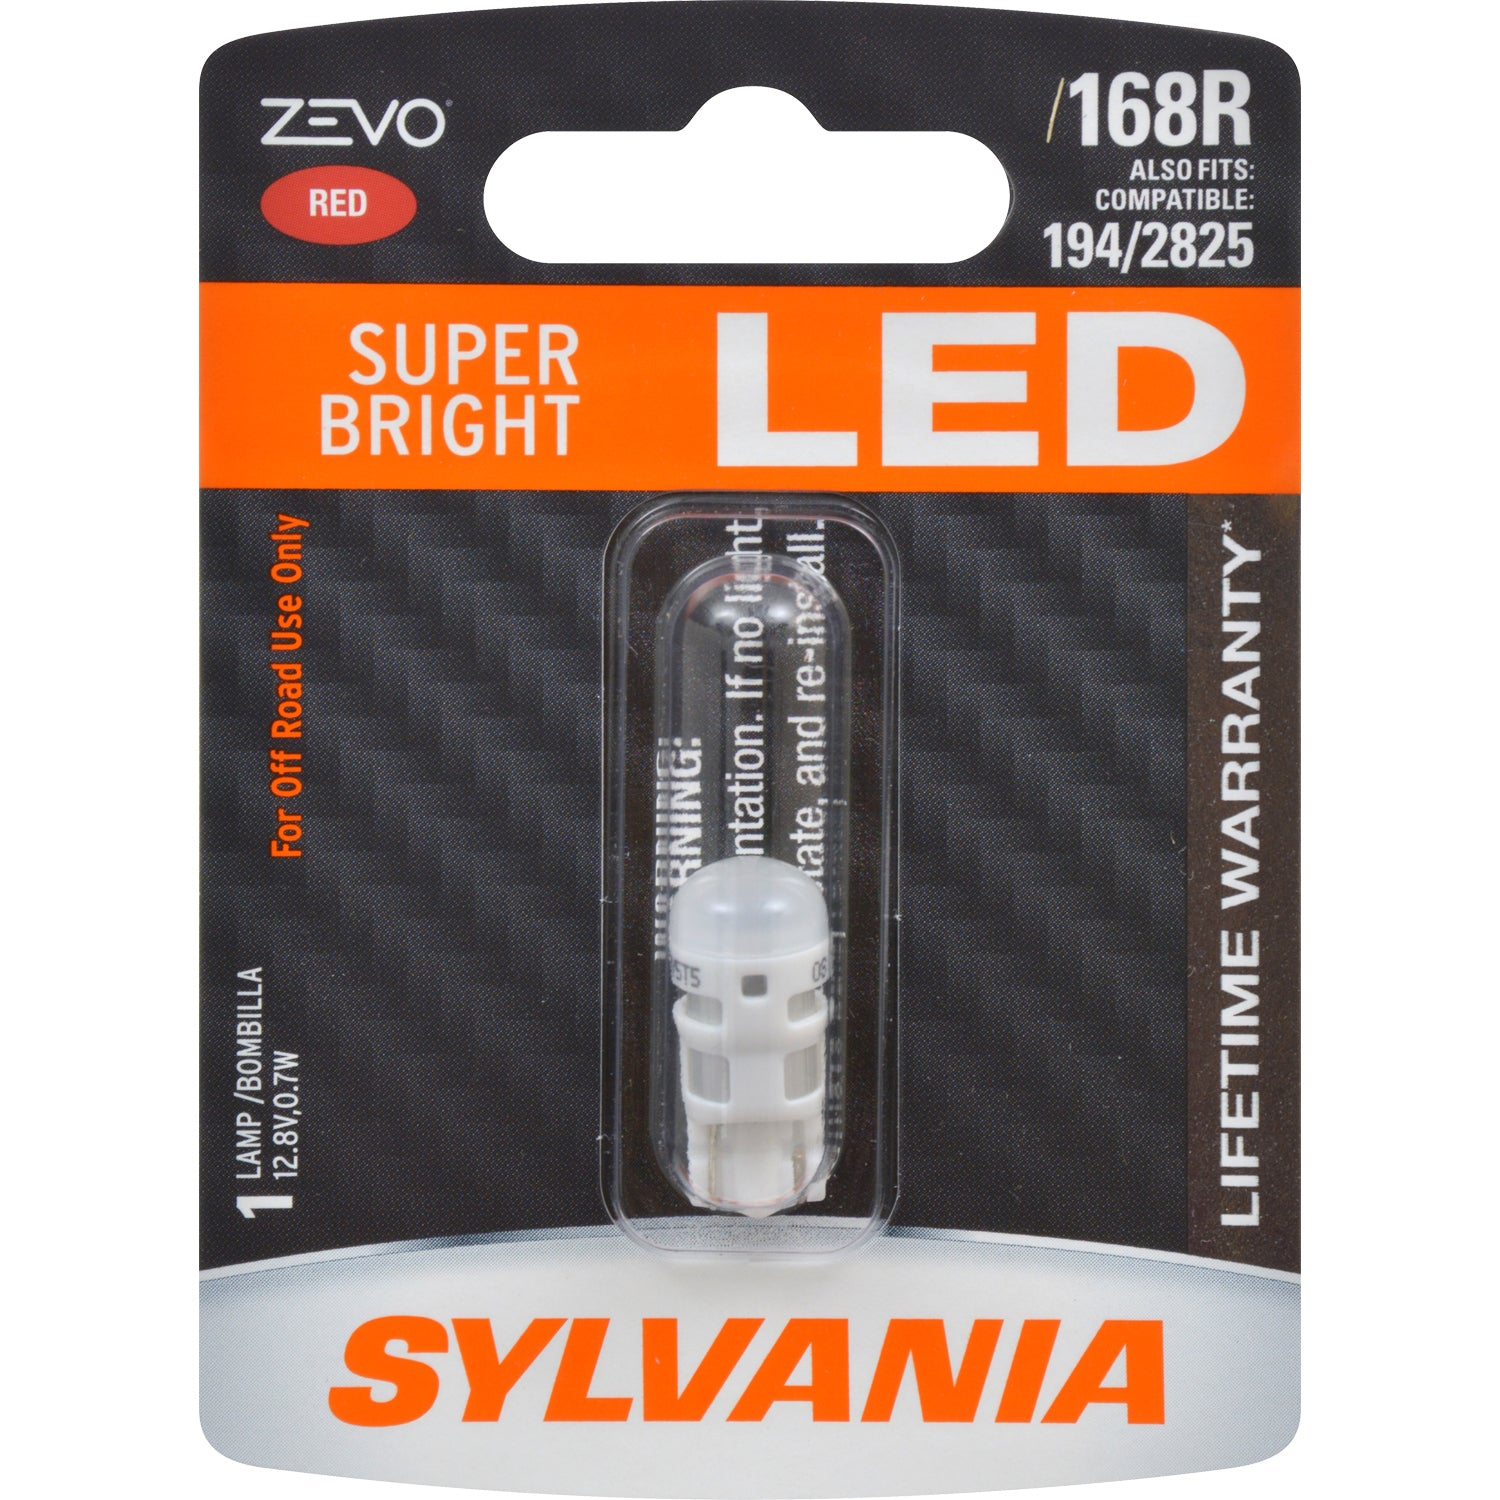 SYLVANIA ZEVO 168 T10 W5W Red LED Automotive Bulb